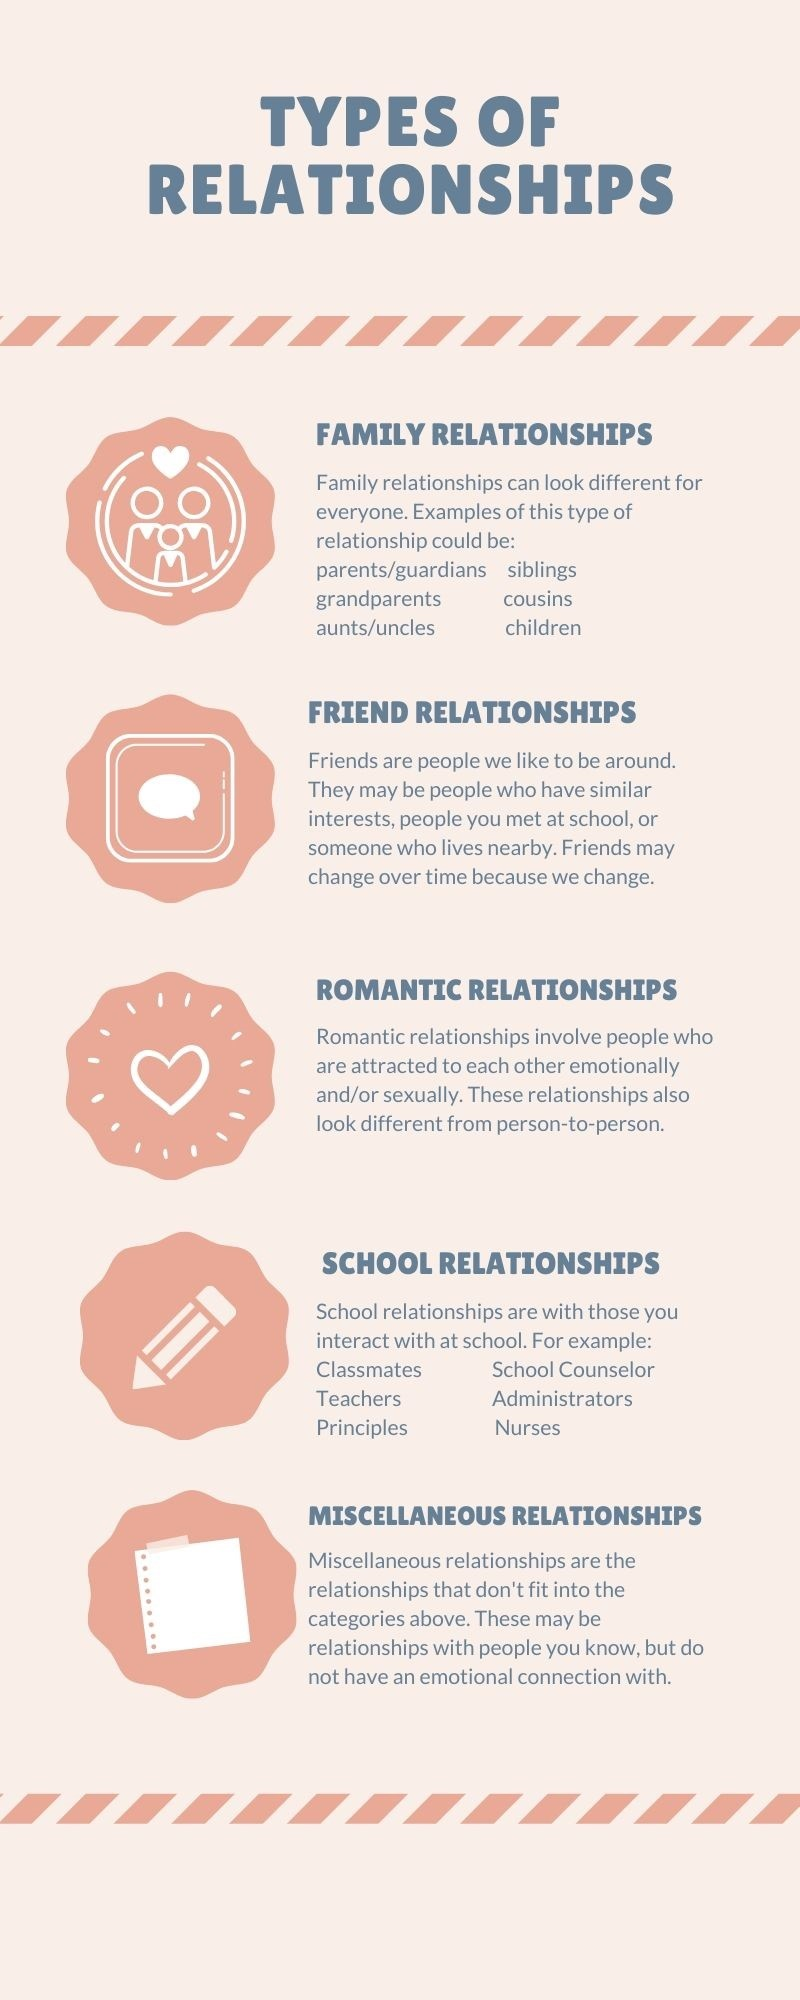 Types of Relationships info graphic